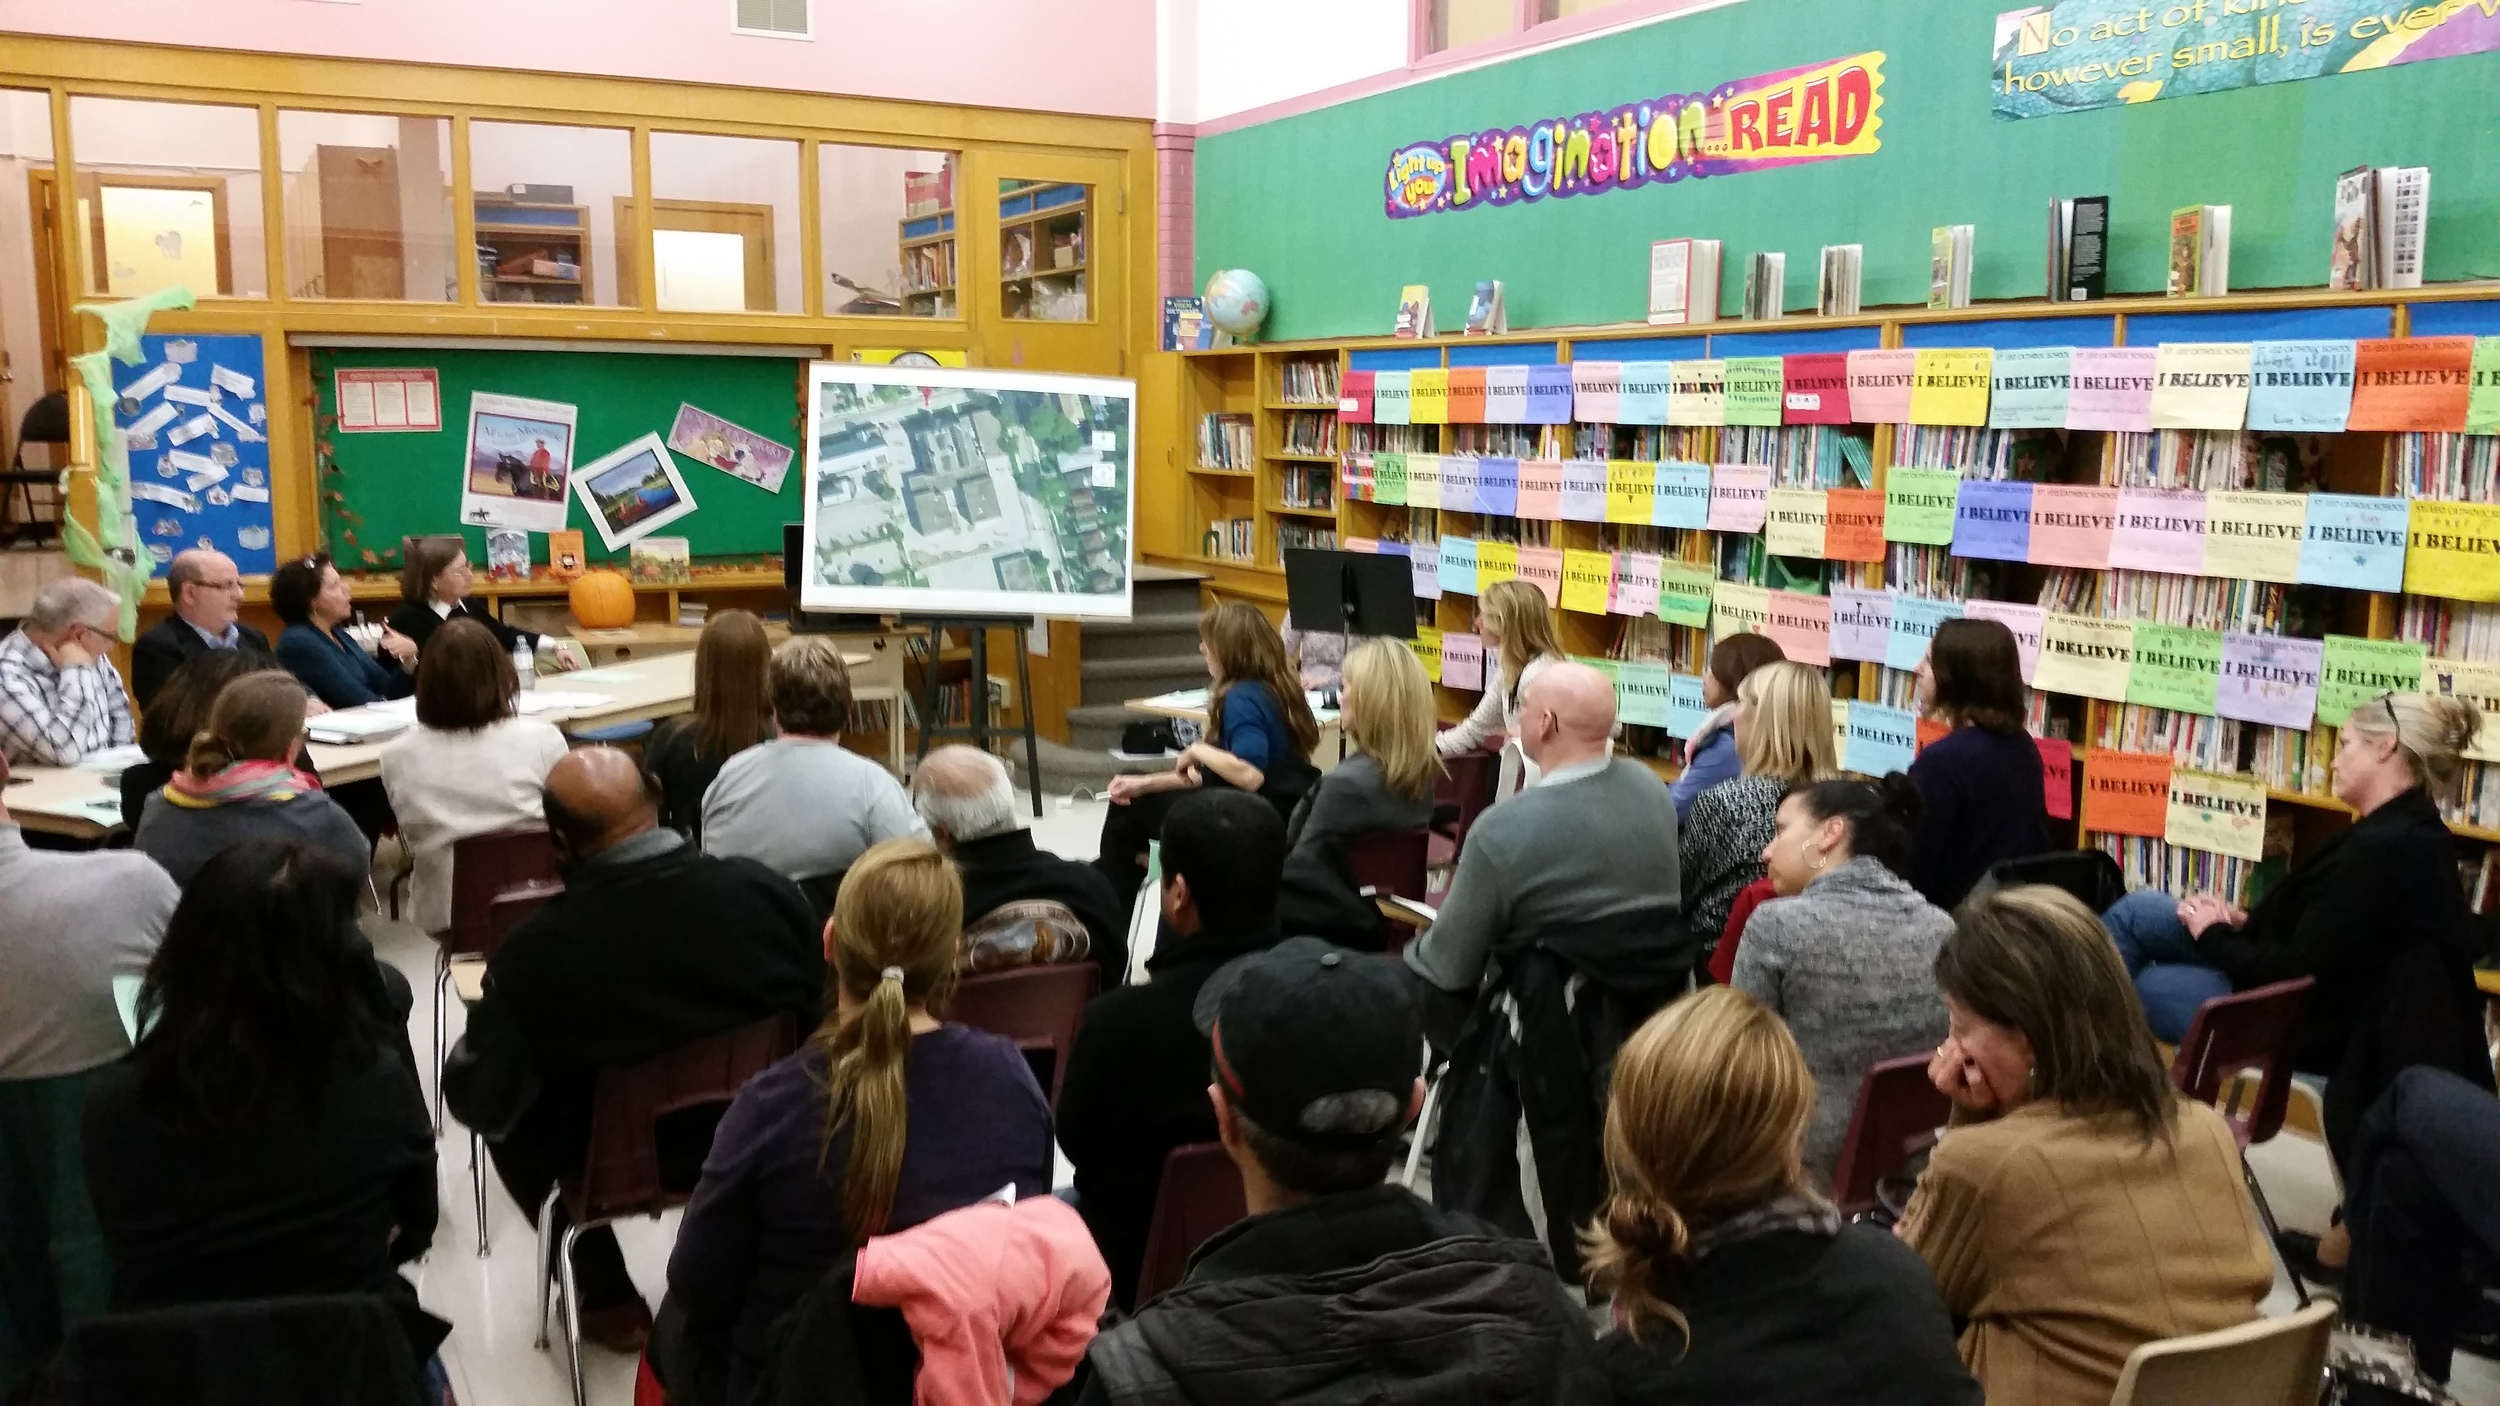 Concerned parents meet withTCDSB Facilities -Morris Iafrate, Angelo Sangiorgio, Maia Puccetti and Trustee Ann Andrachuk about future of St. Leo.